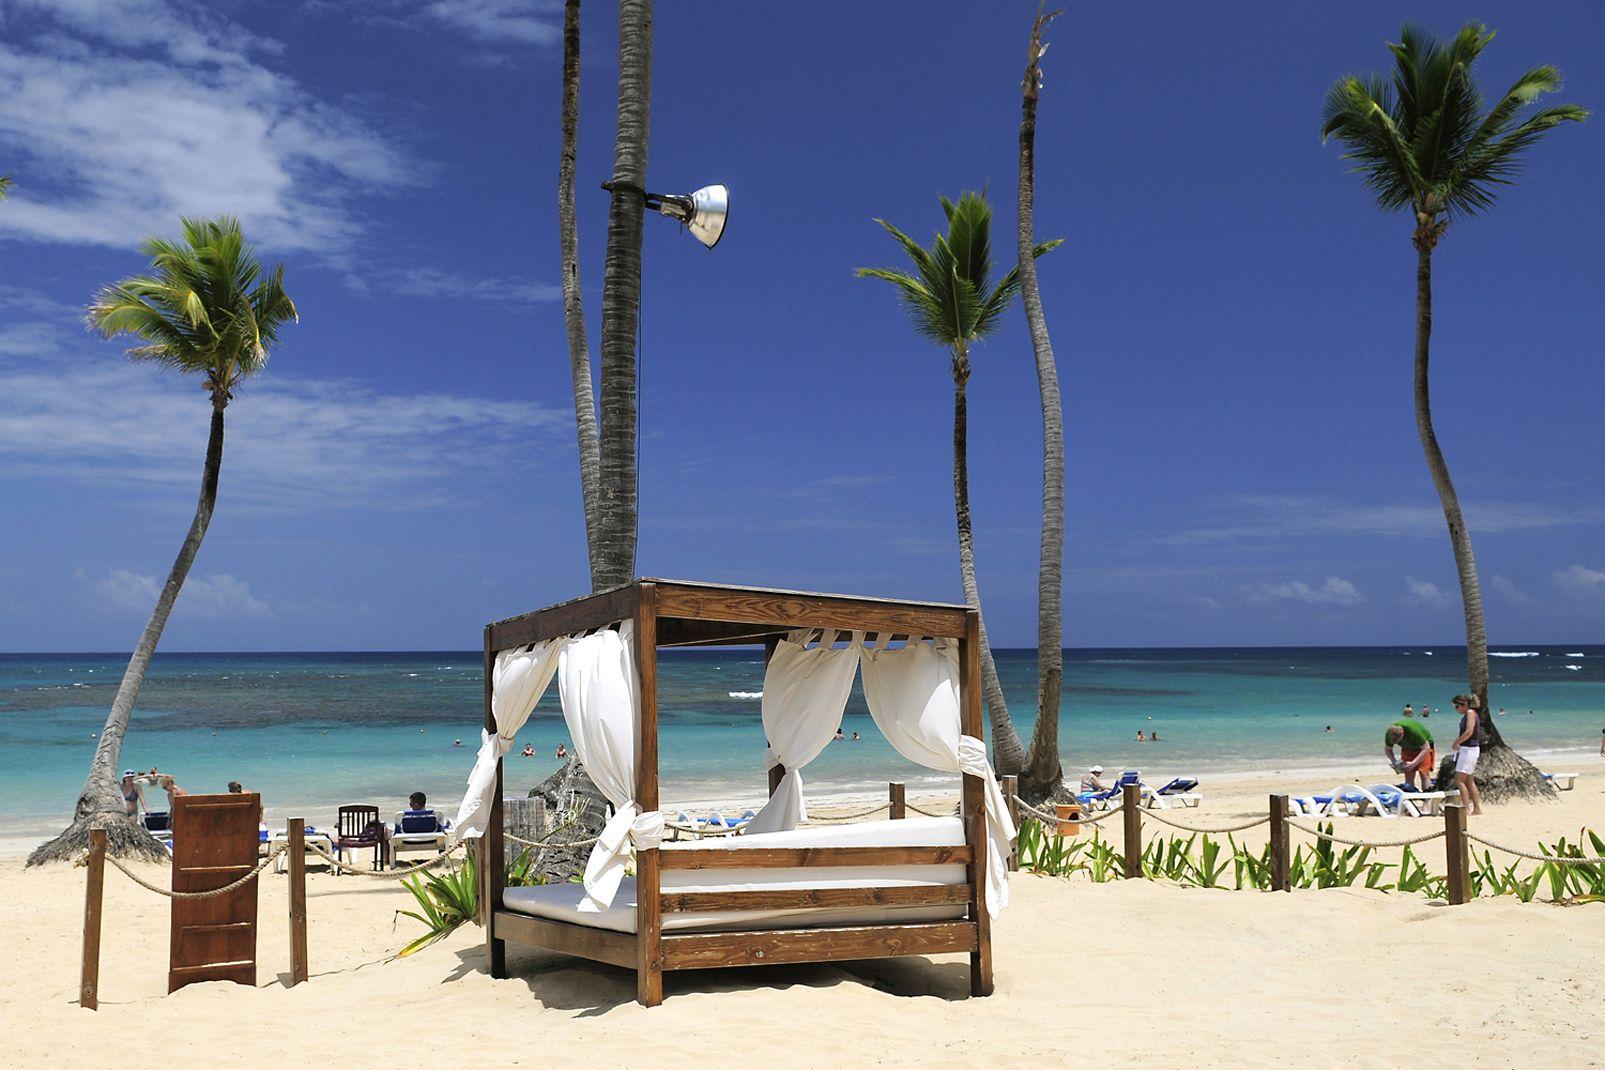 s jour r publique dominicaine splashworld grand sirenis punta cana resort punta cana. Black Bedroom Furniture Sets. Home Design Ideas